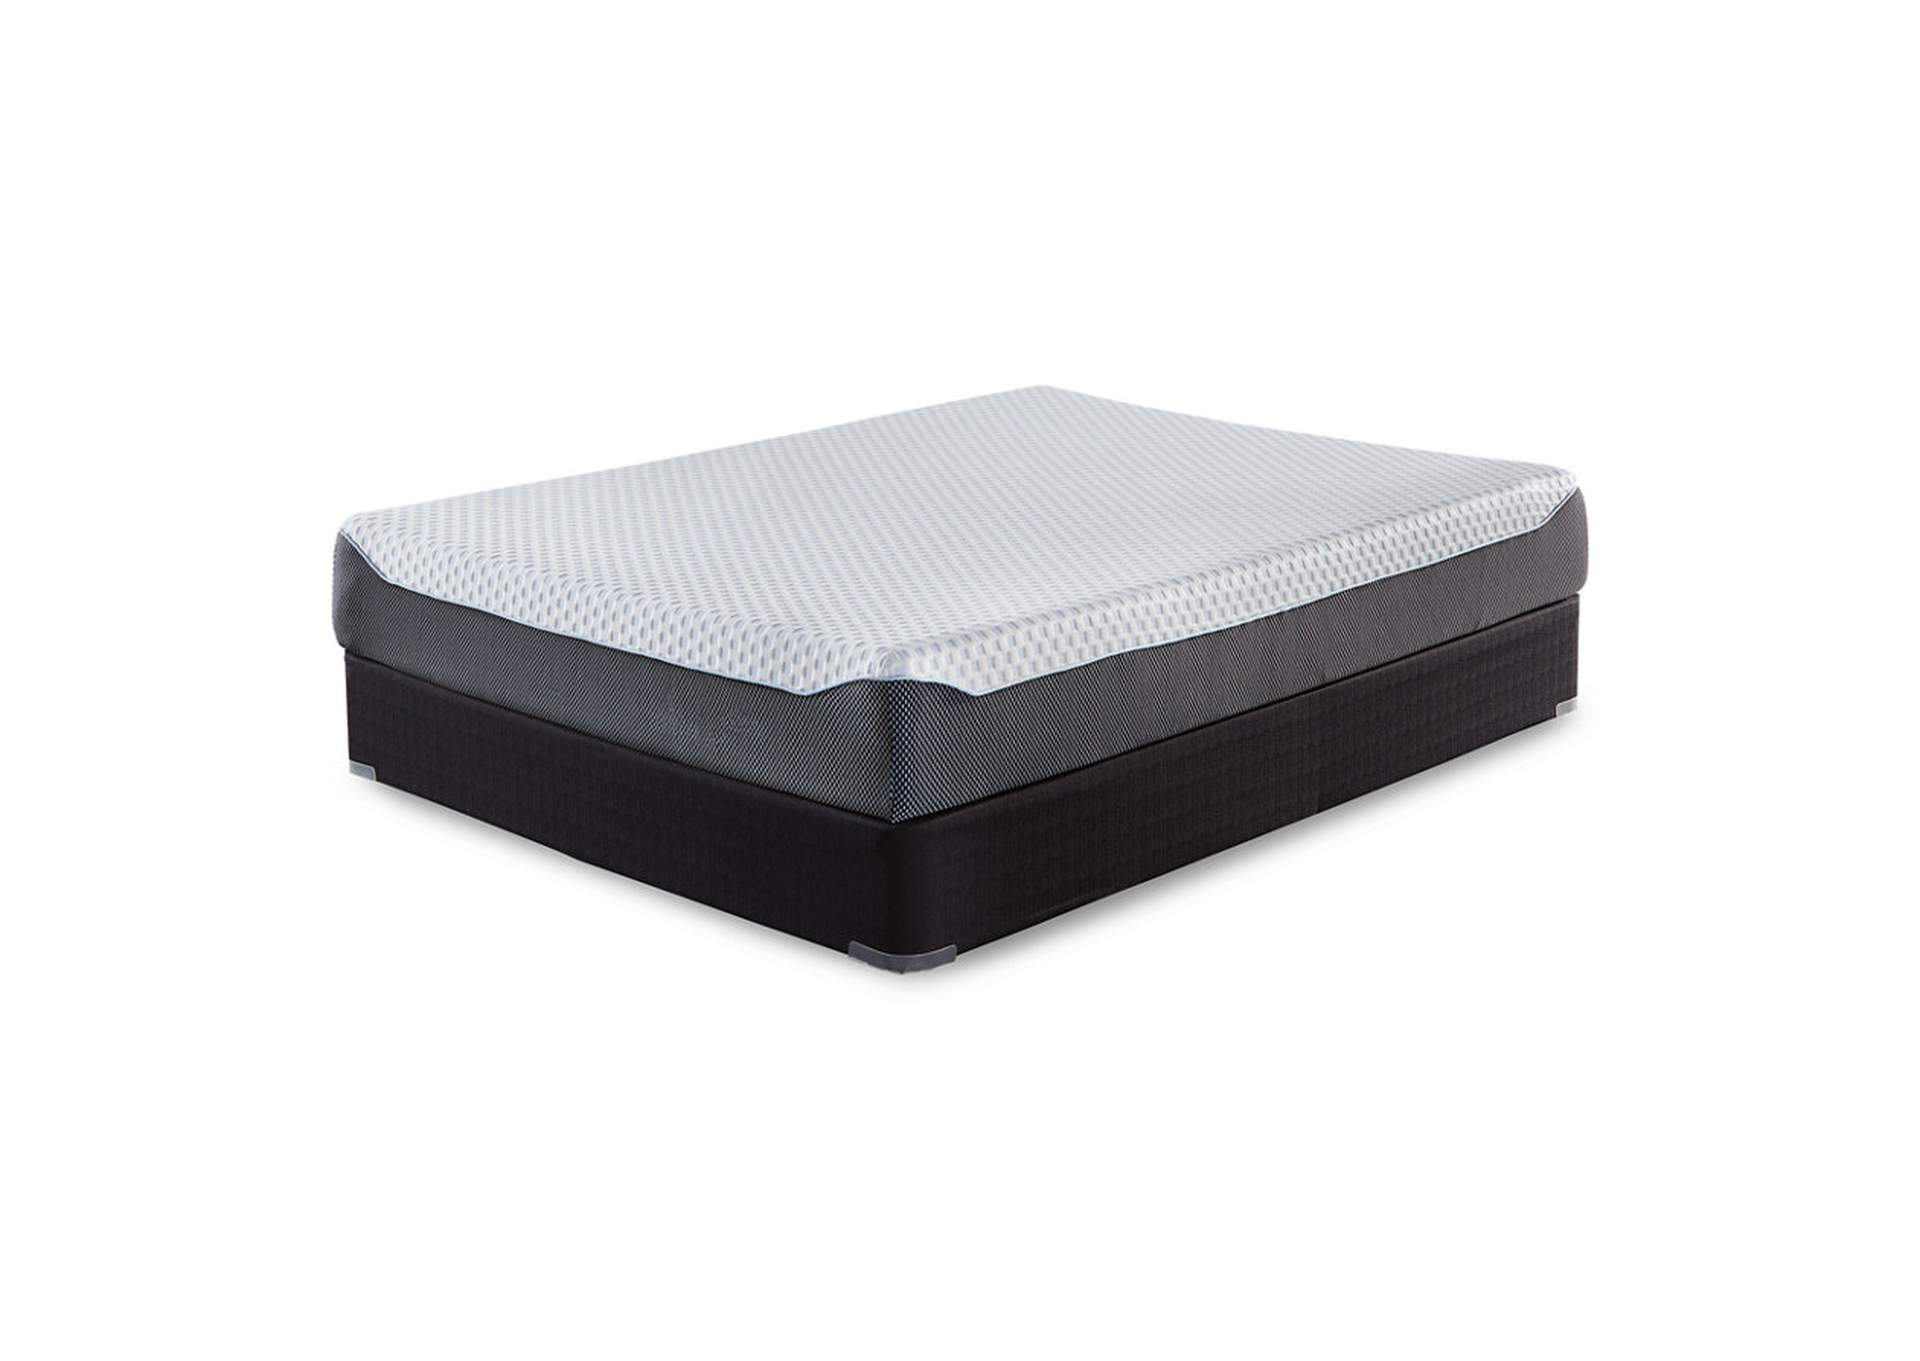 10 Inch Chime Elite Queen Memory Foam Mattress in a box w/Foundation,Sierra Sleep by Ashley